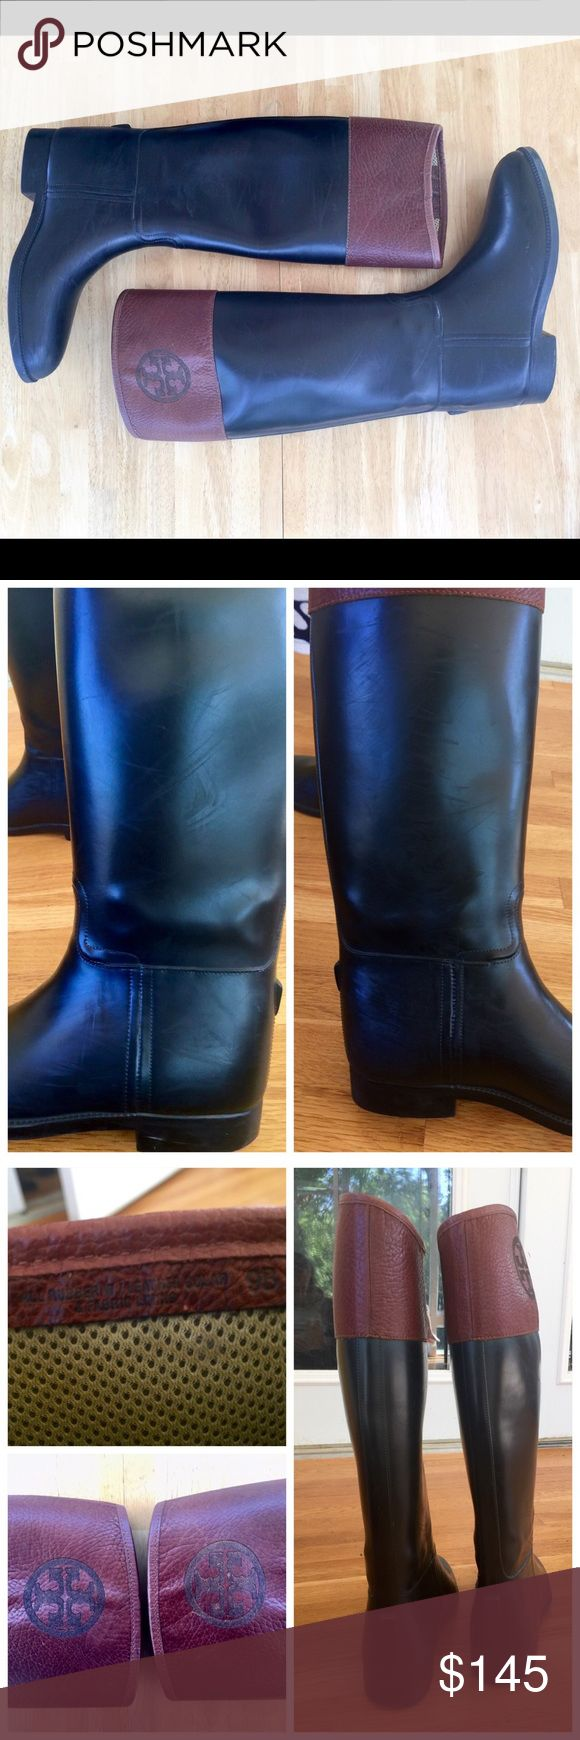 """♨️JUST IN♨️ Aigle Winnie Rubber Ridding/Rain Boots These are pre loved, has scuffing marks and wear but are in good condition. Rubber with contrast leather top shaft. Round toe. Double """"T"""" at the top shaft. 1"""" block heel; 1/2 platform. Pull-on style. Approx. 17"""" overall boot height; 16"""" circumference. Tory Burch Shoes Winter & Rain Boots"""